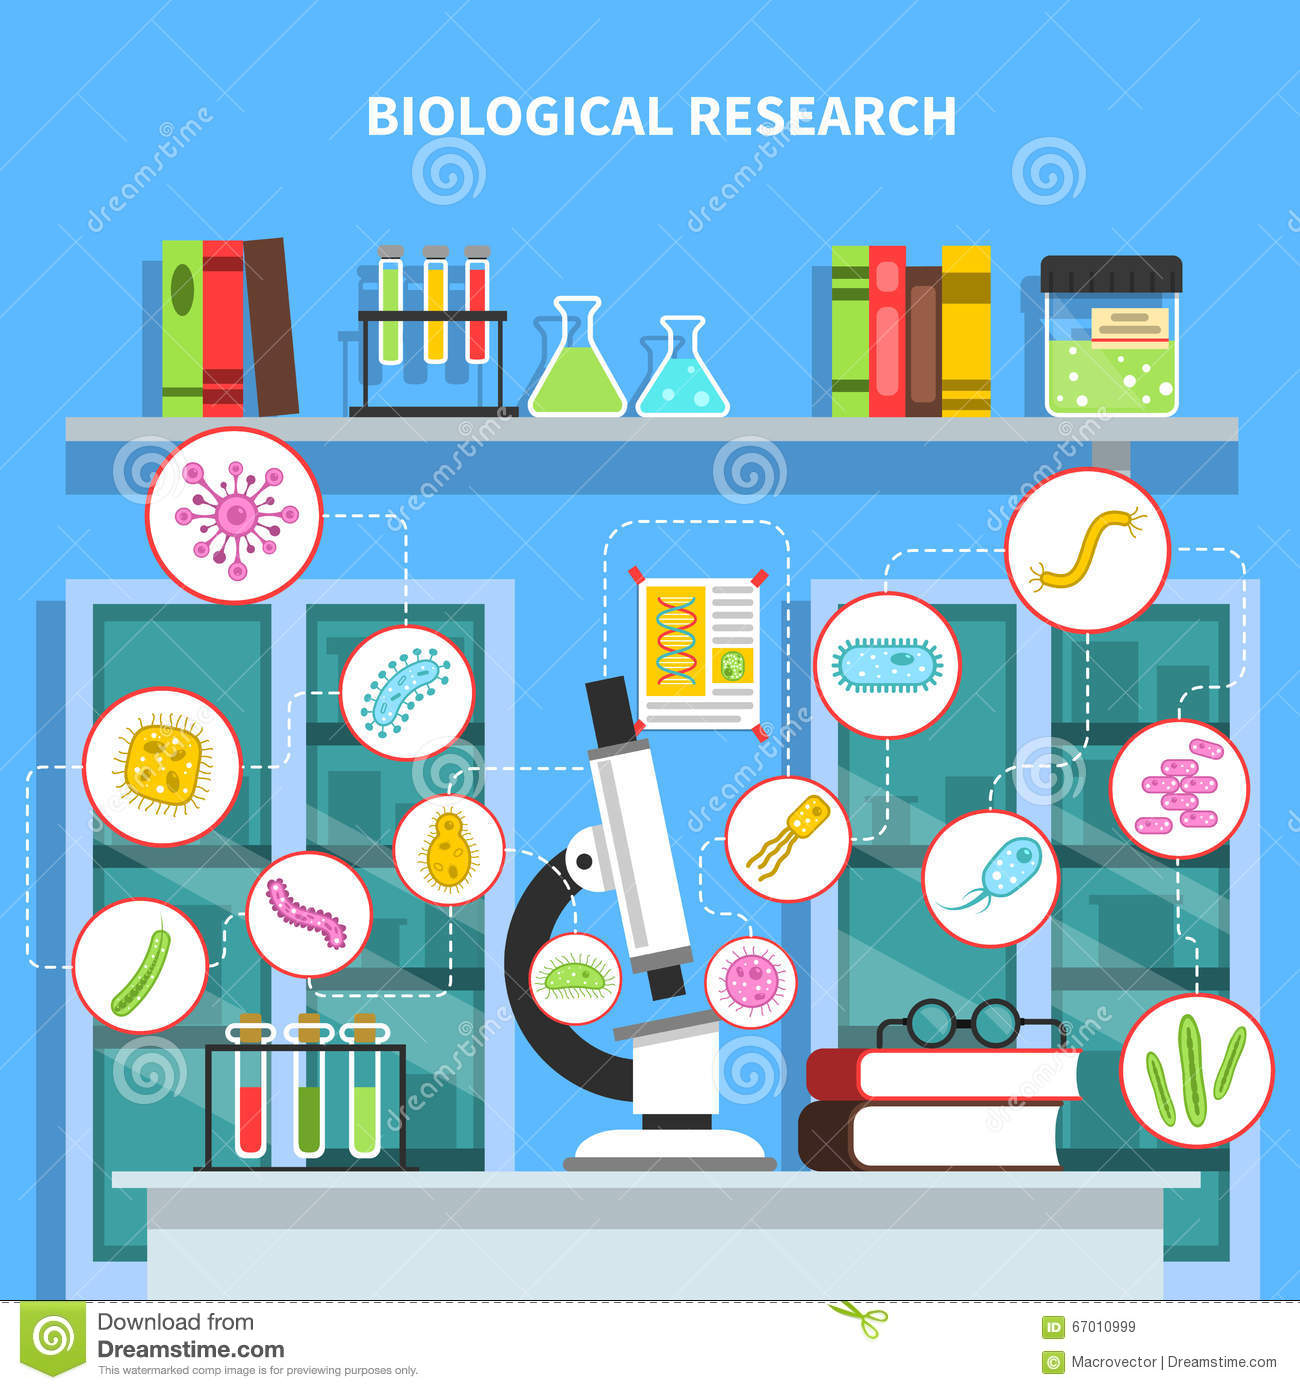 Microbiology Concept Illustration Stock Vector - Image ...